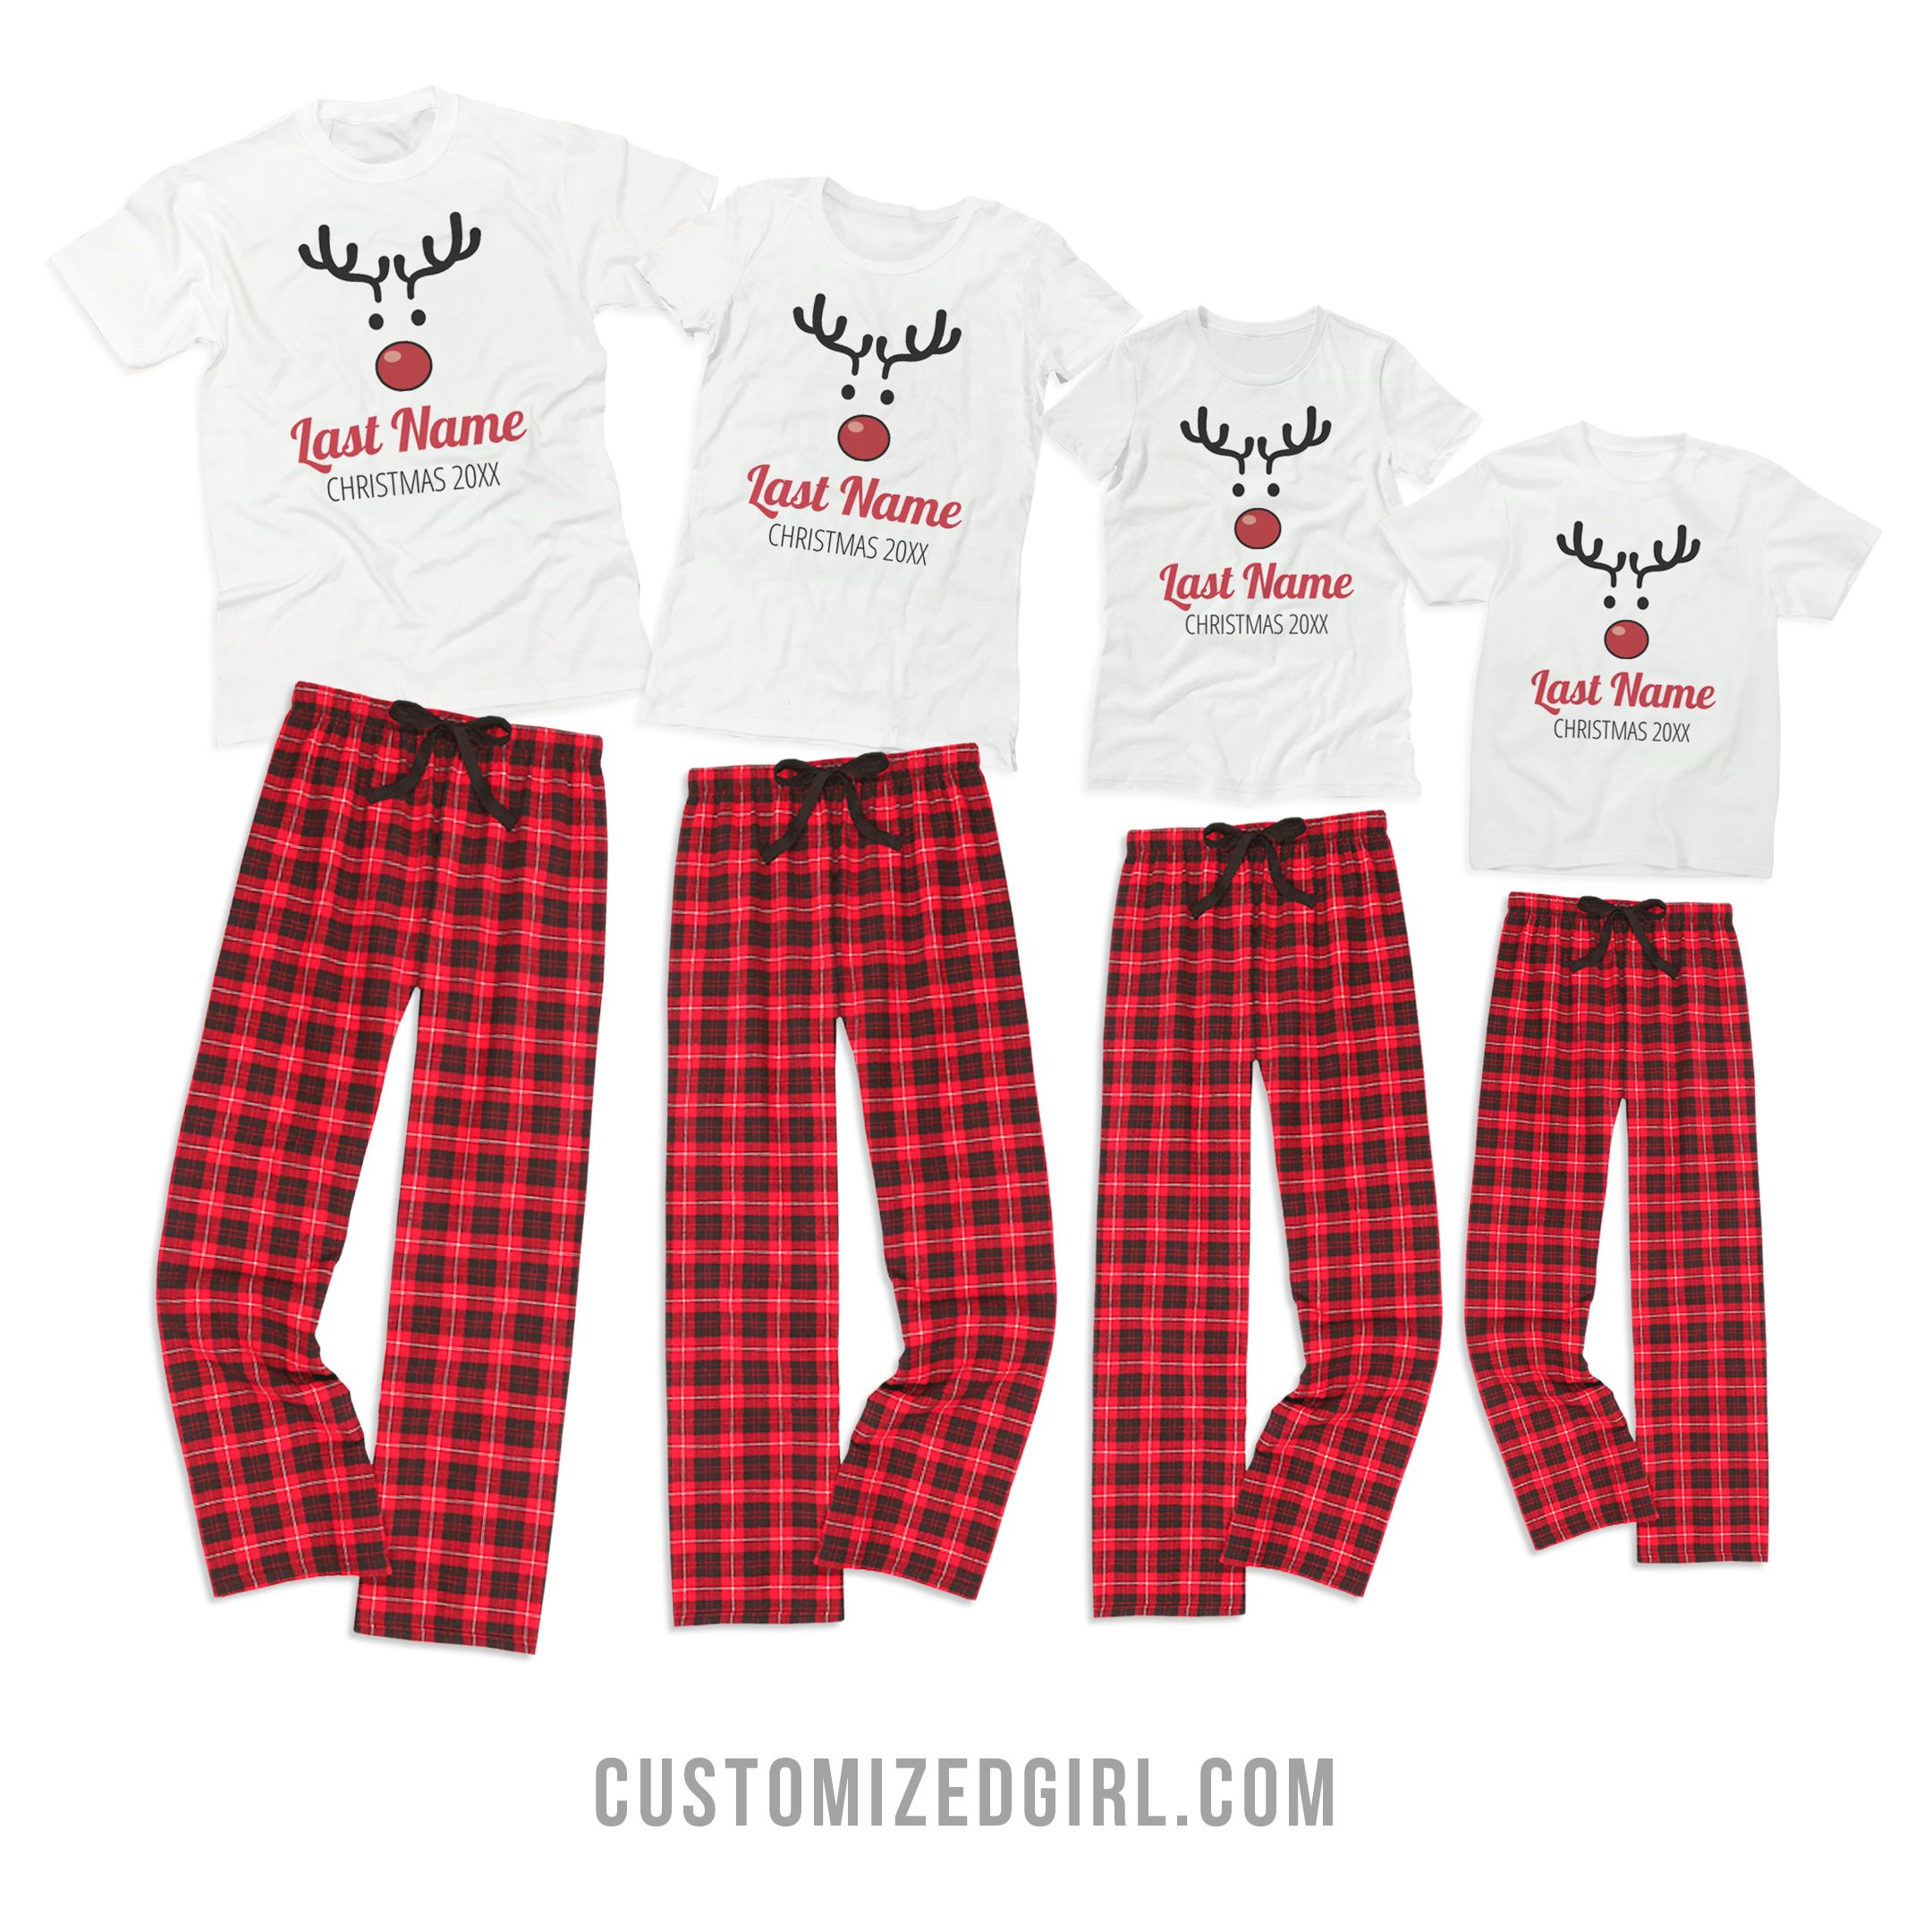 49a1945162 Custom Kids Rudolph Family Pajamas - Who doesn t like matching Christmas  pajamas  Get your family together and customize these with your last name  and the ...